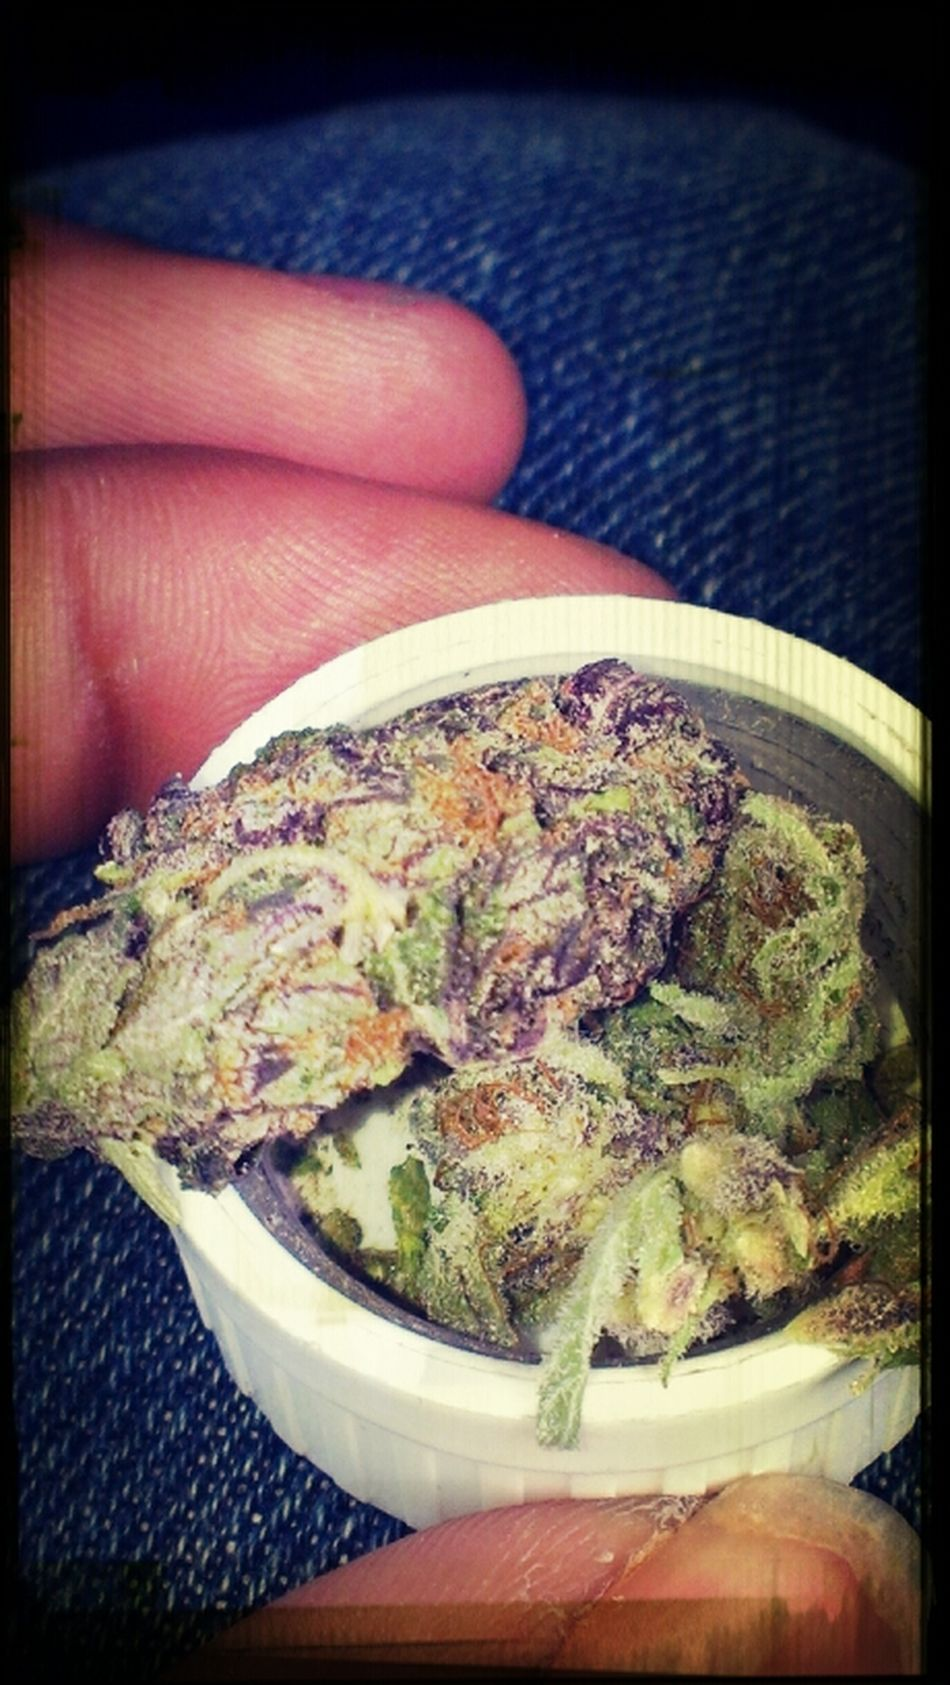 That Purple Only!!